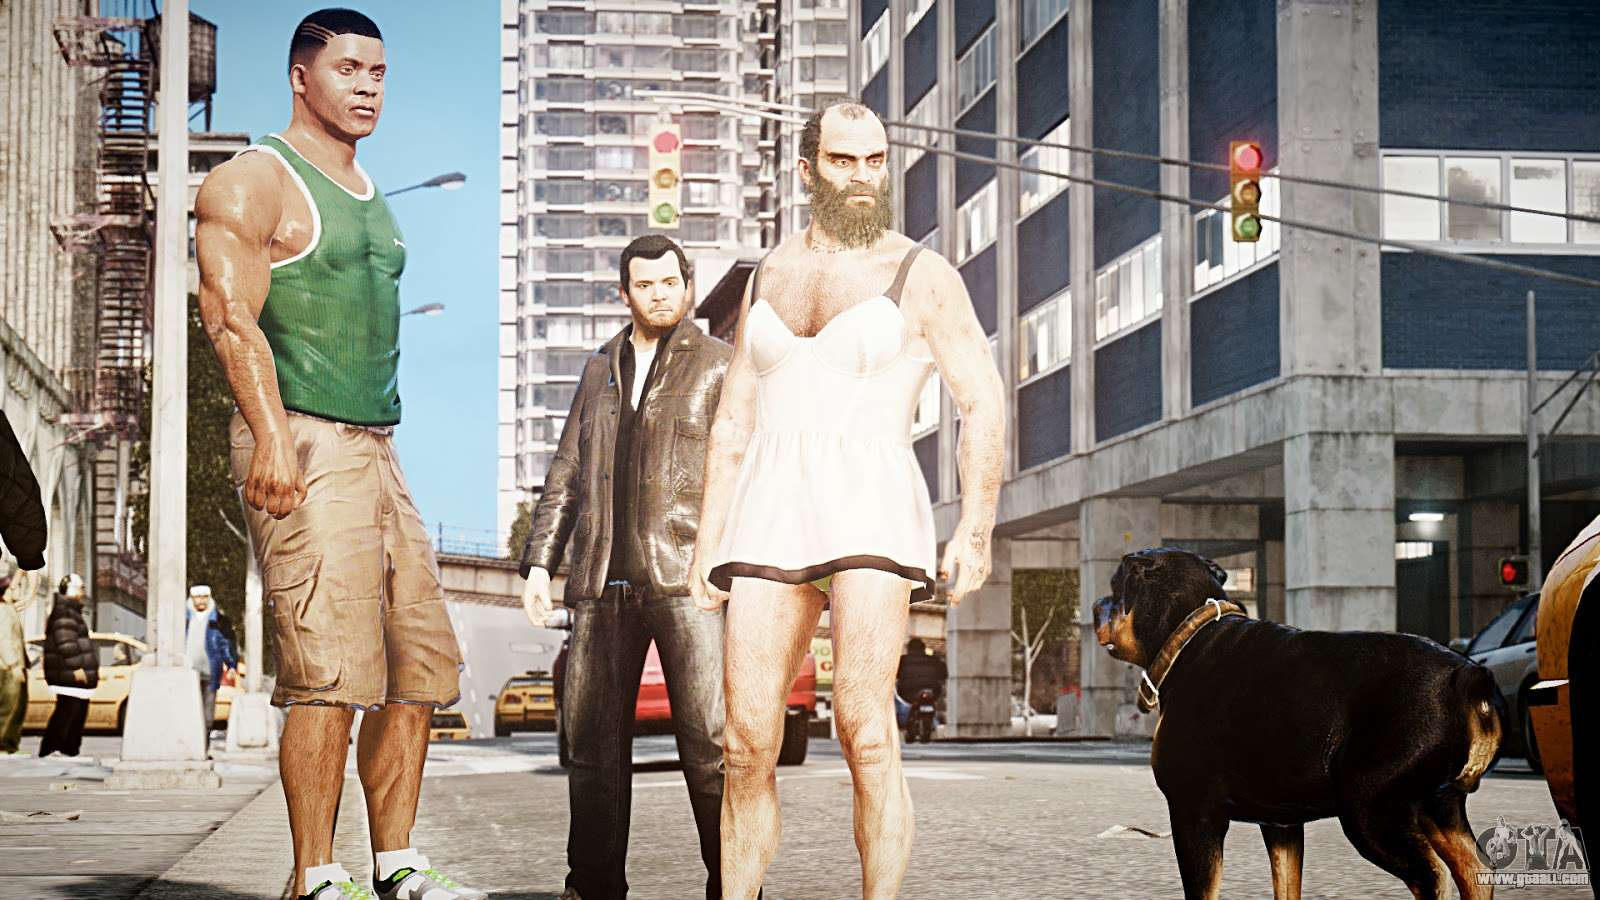 How big is gta 5 download ps3 in game for pc